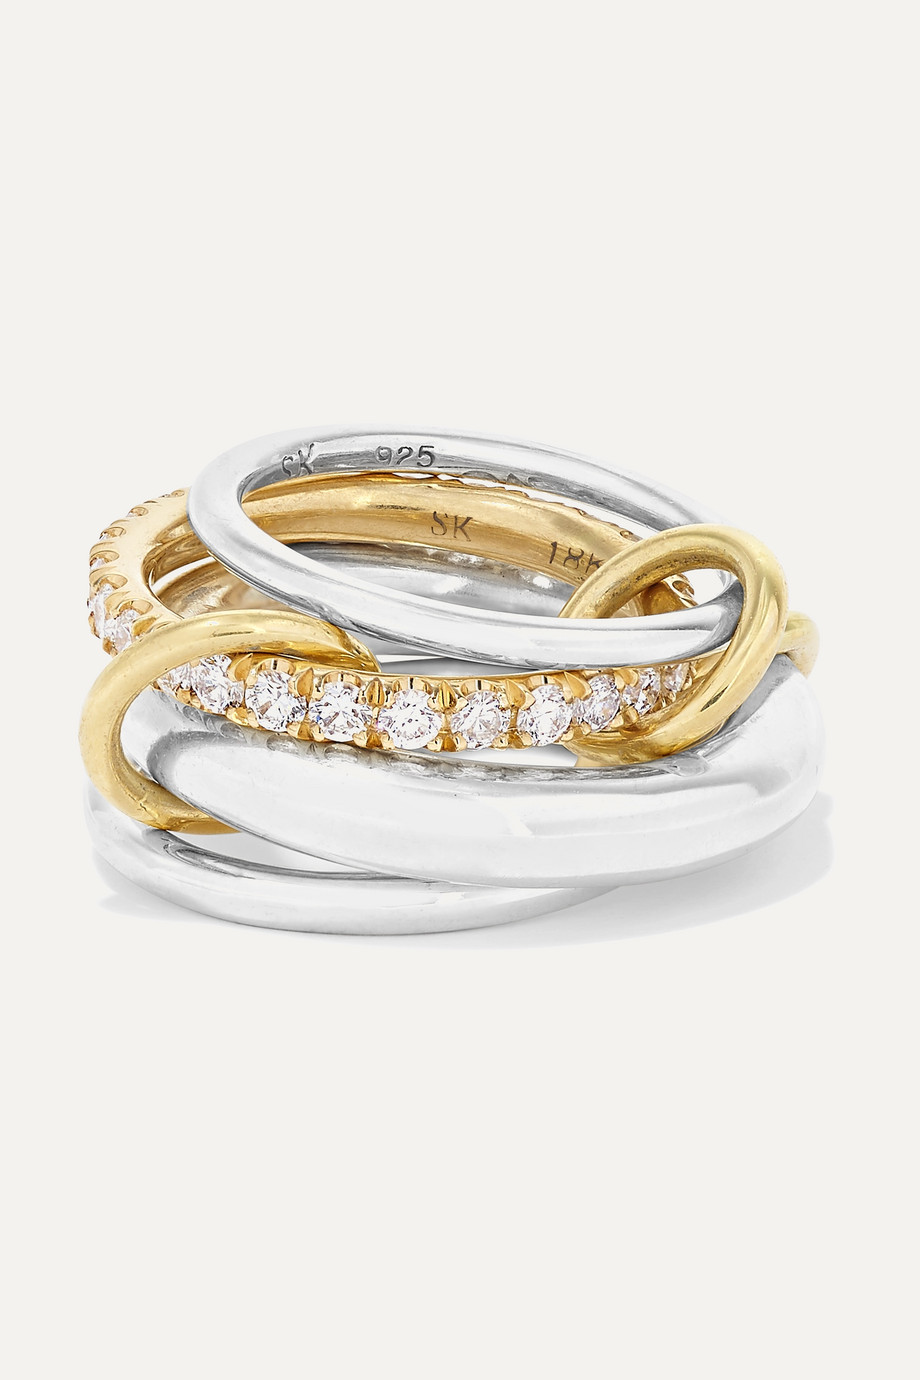 SPINELLI KILCOLLIN Set of four sterling silver, 18-karat gold and diamond rings